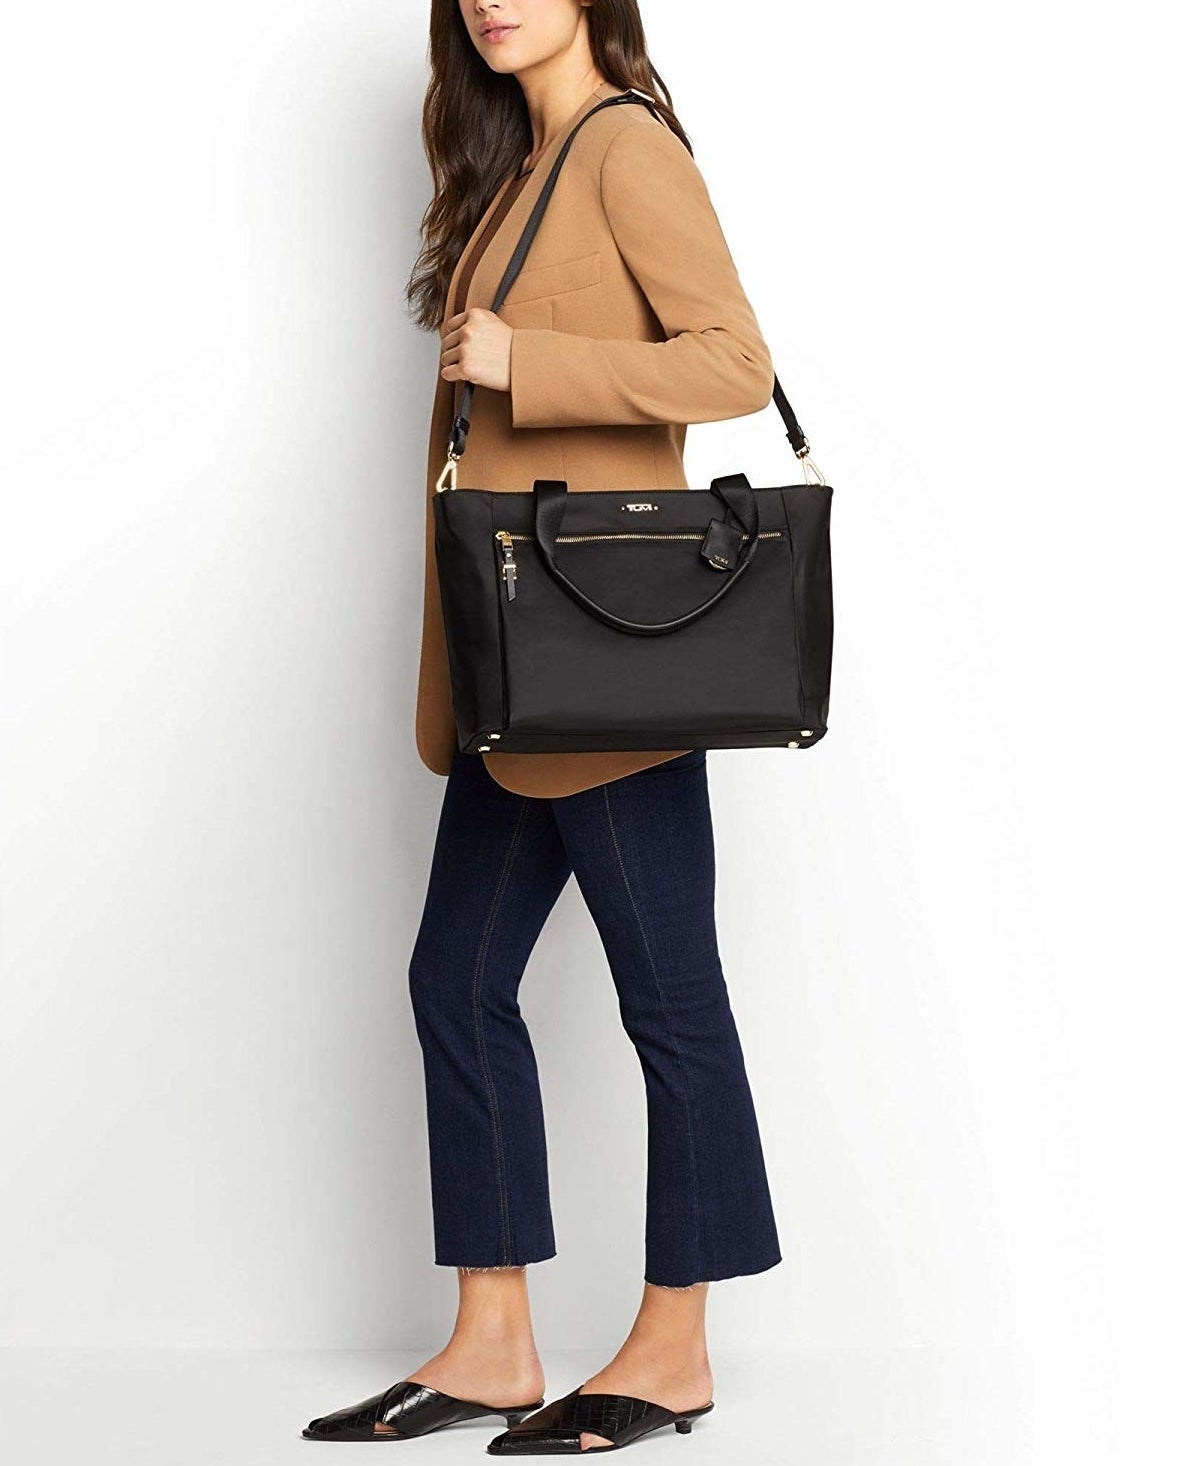 Model carrying the tote in black over their shoulder